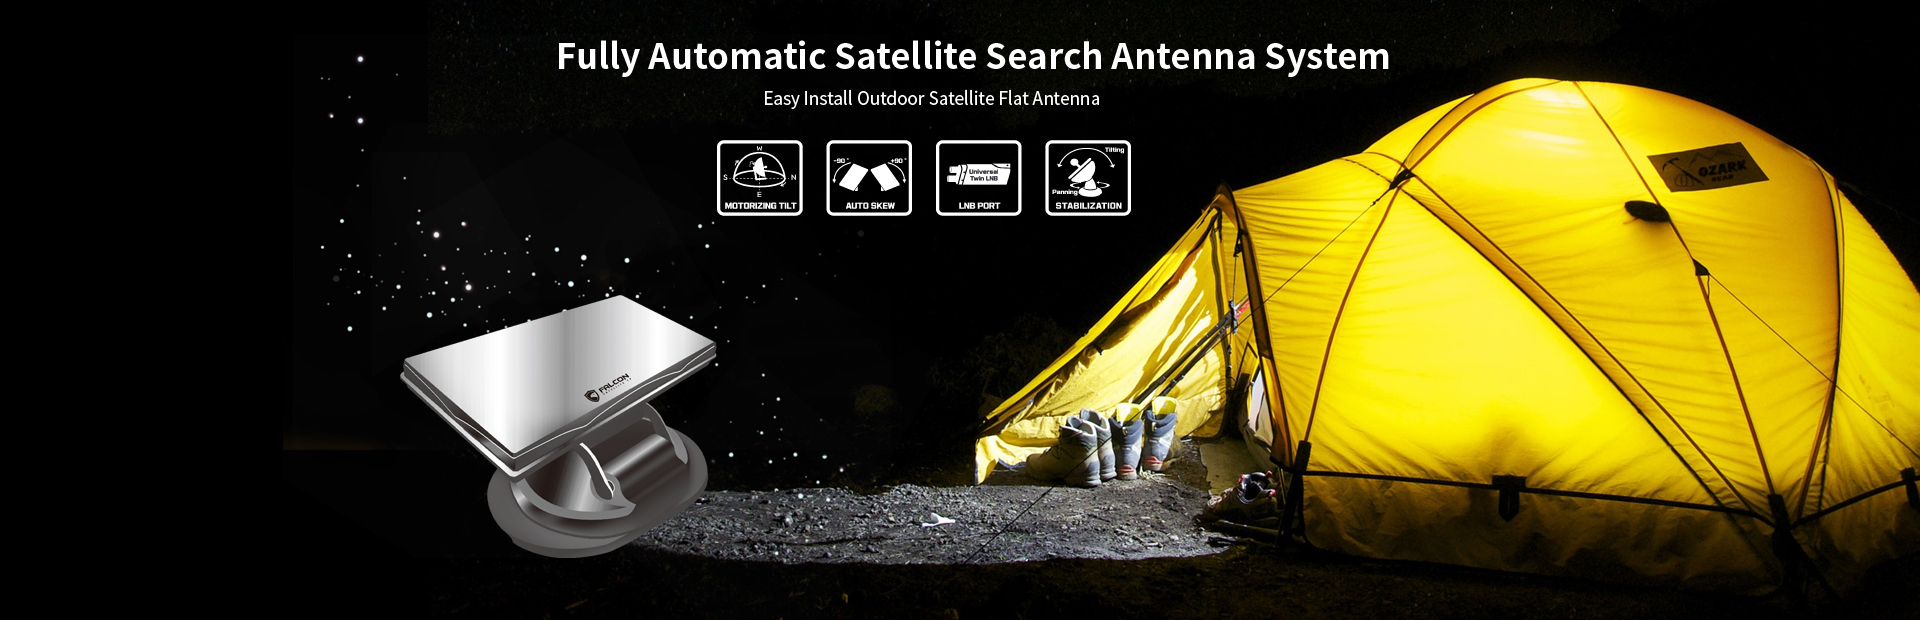 Fully Aytomatic Satellite Search Antenna System